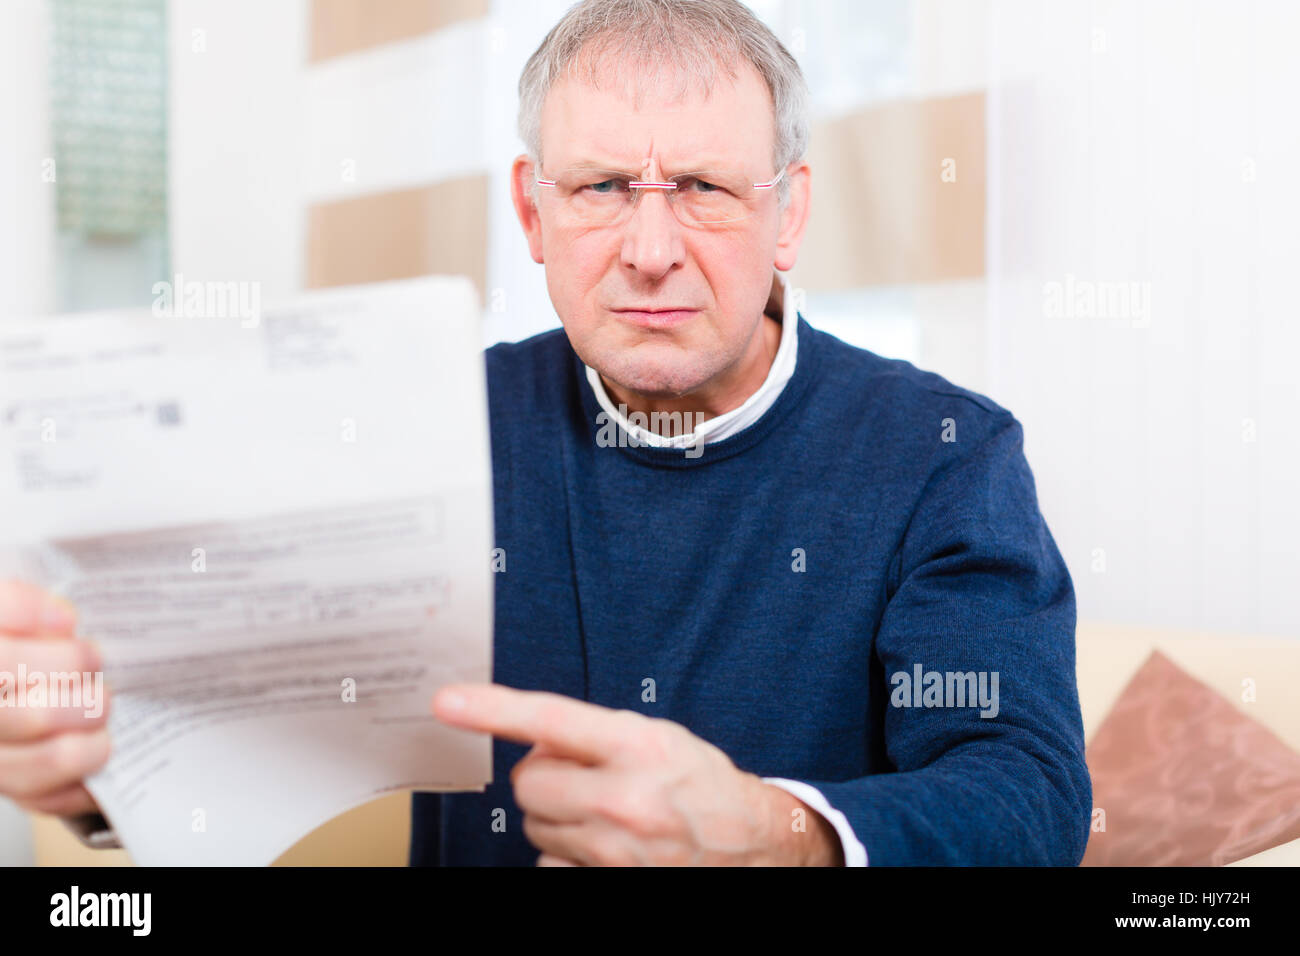 anger, resentment, annoy, data, informations, substratums, facts, information, - Stock Image